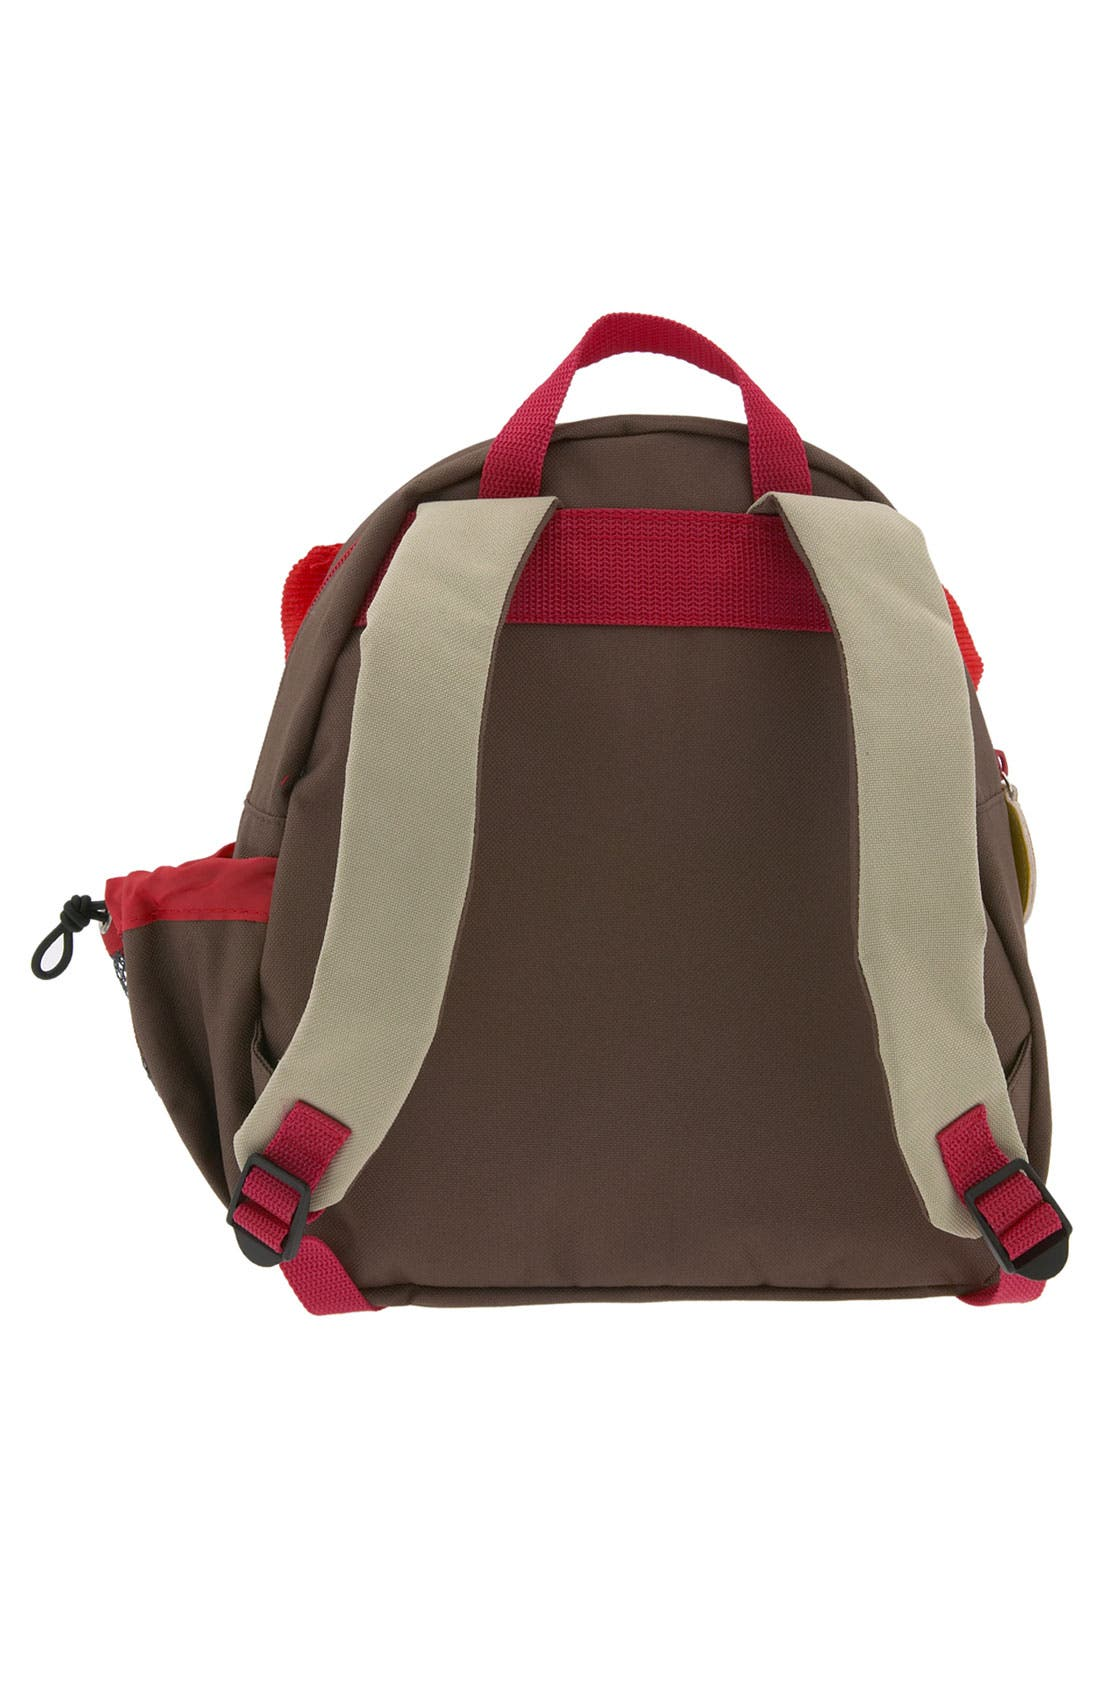 Zoo Pack Backpack,                             Alternate thumbnail 6, color,                             BROWN